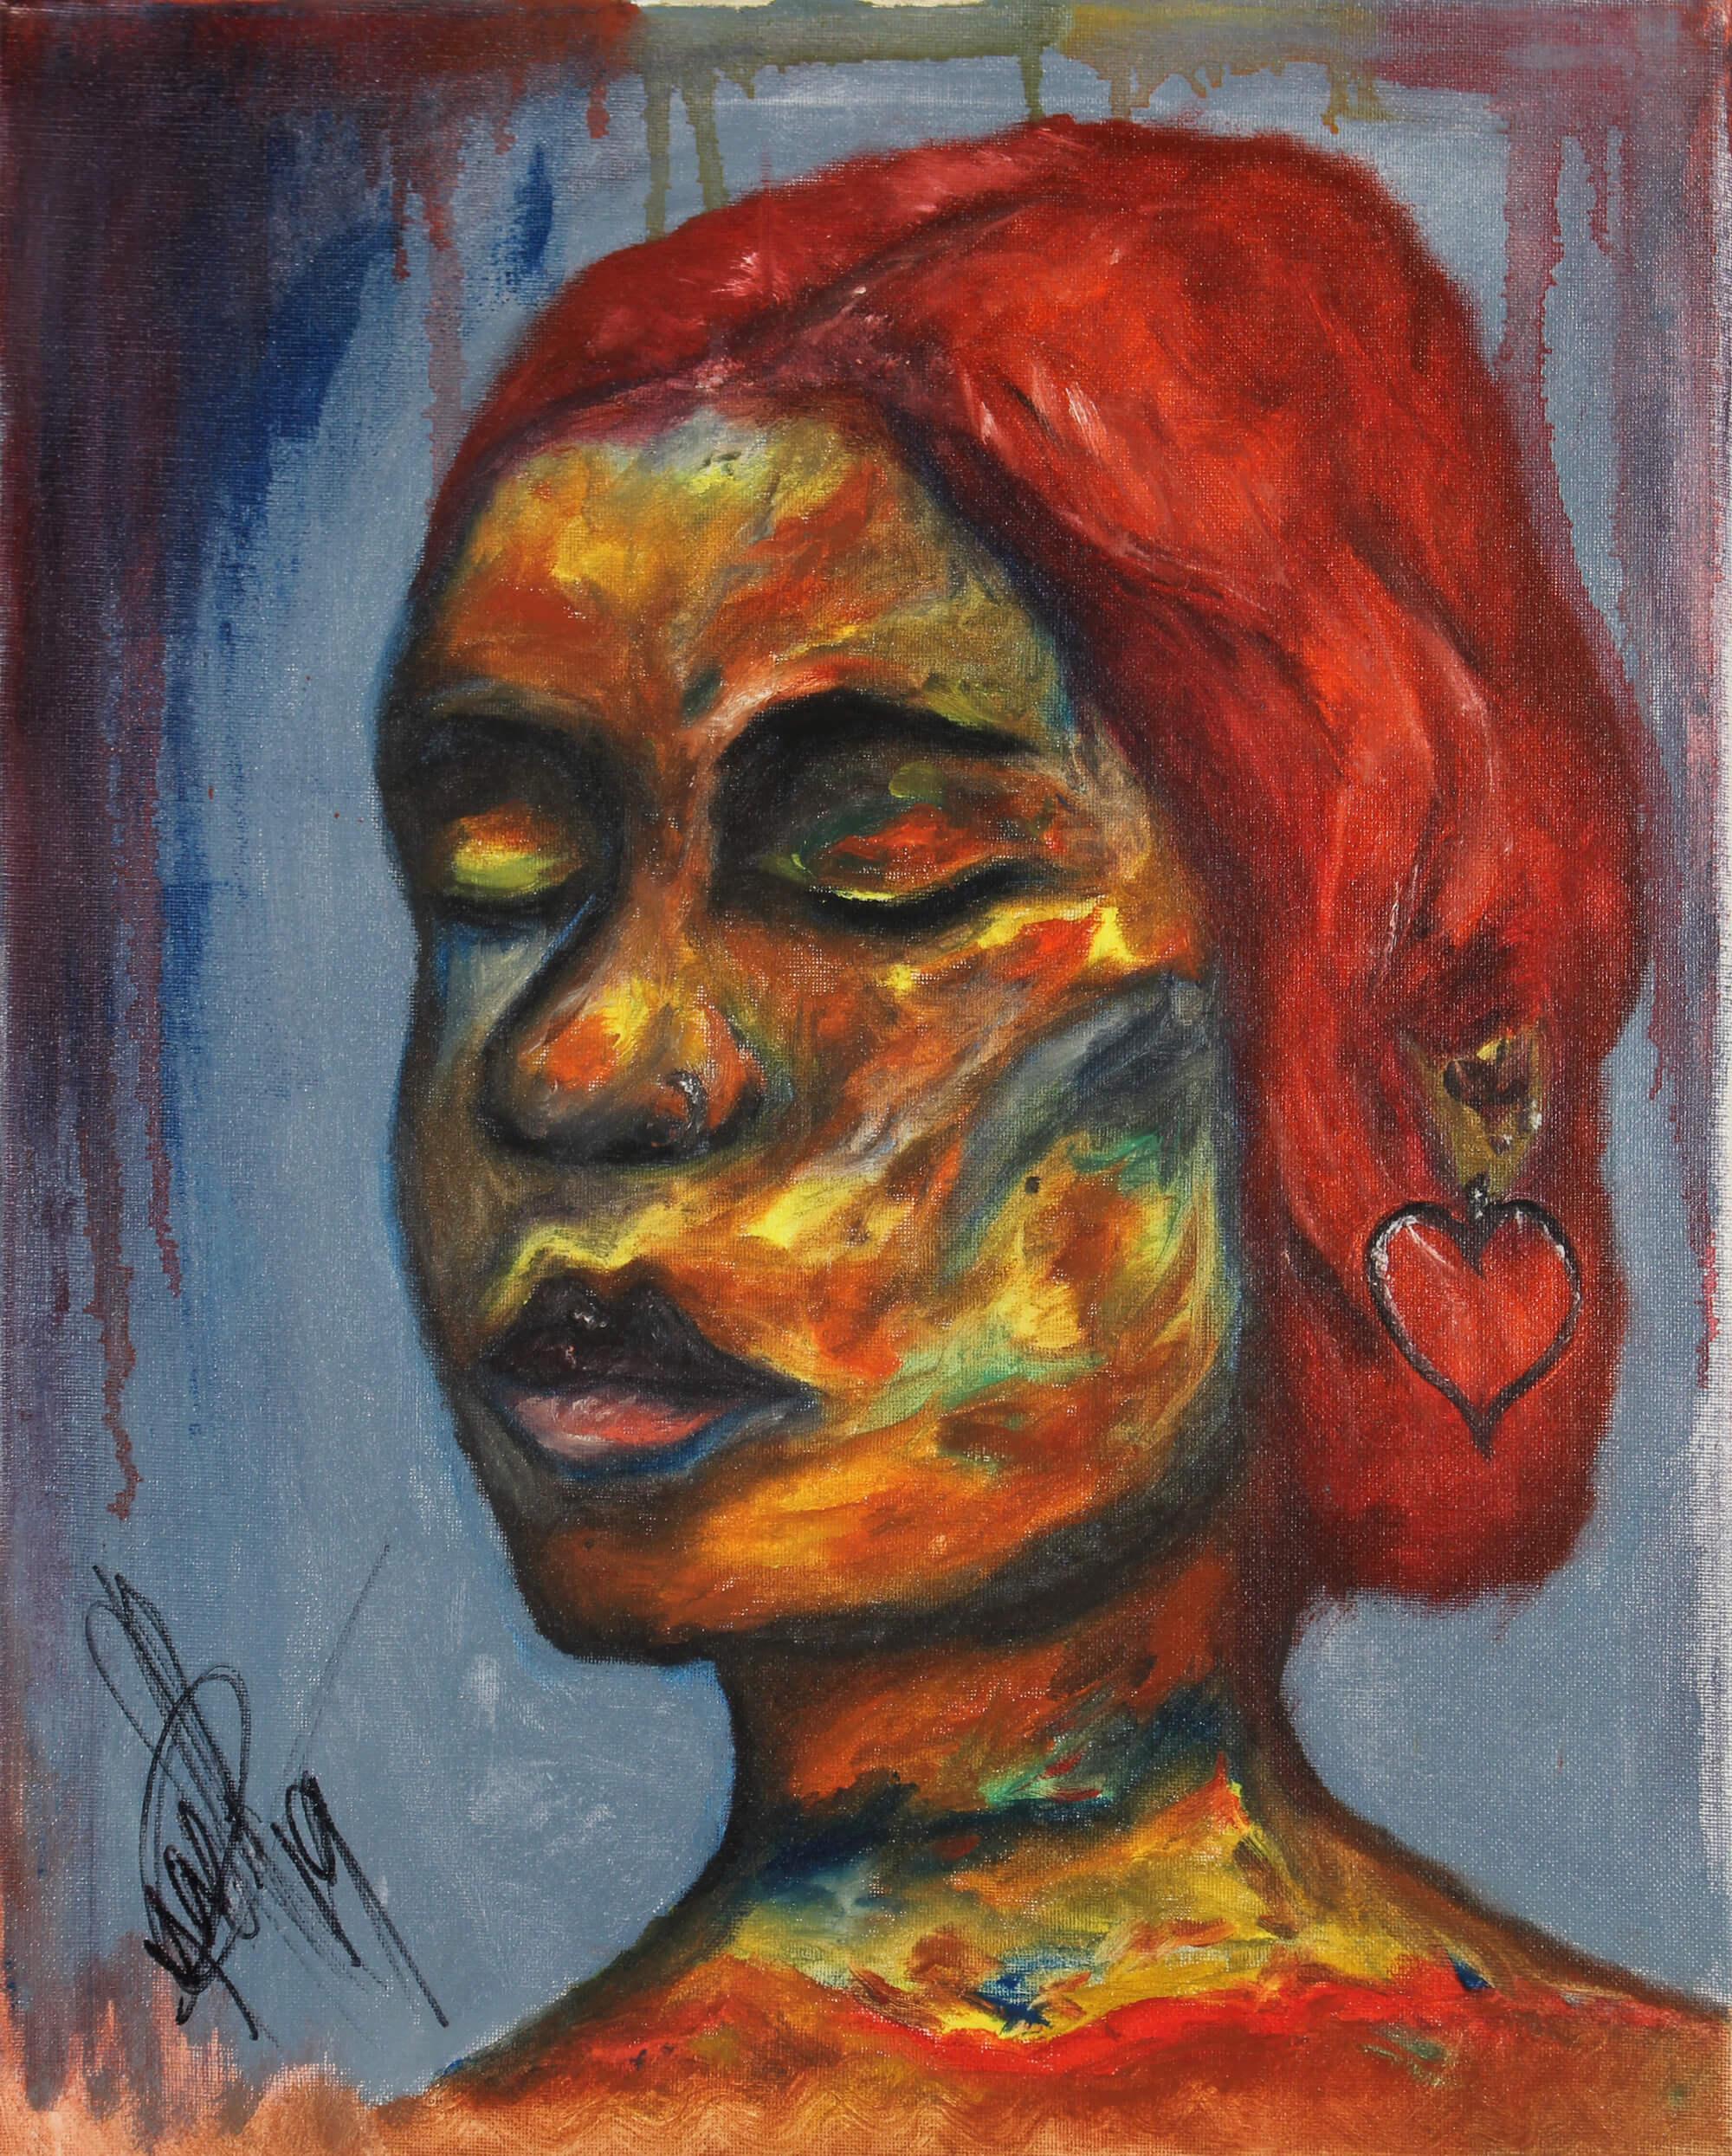 Oil painting of portrait of a red hair female with multi color skin and eyes closed by Kyhan Yael